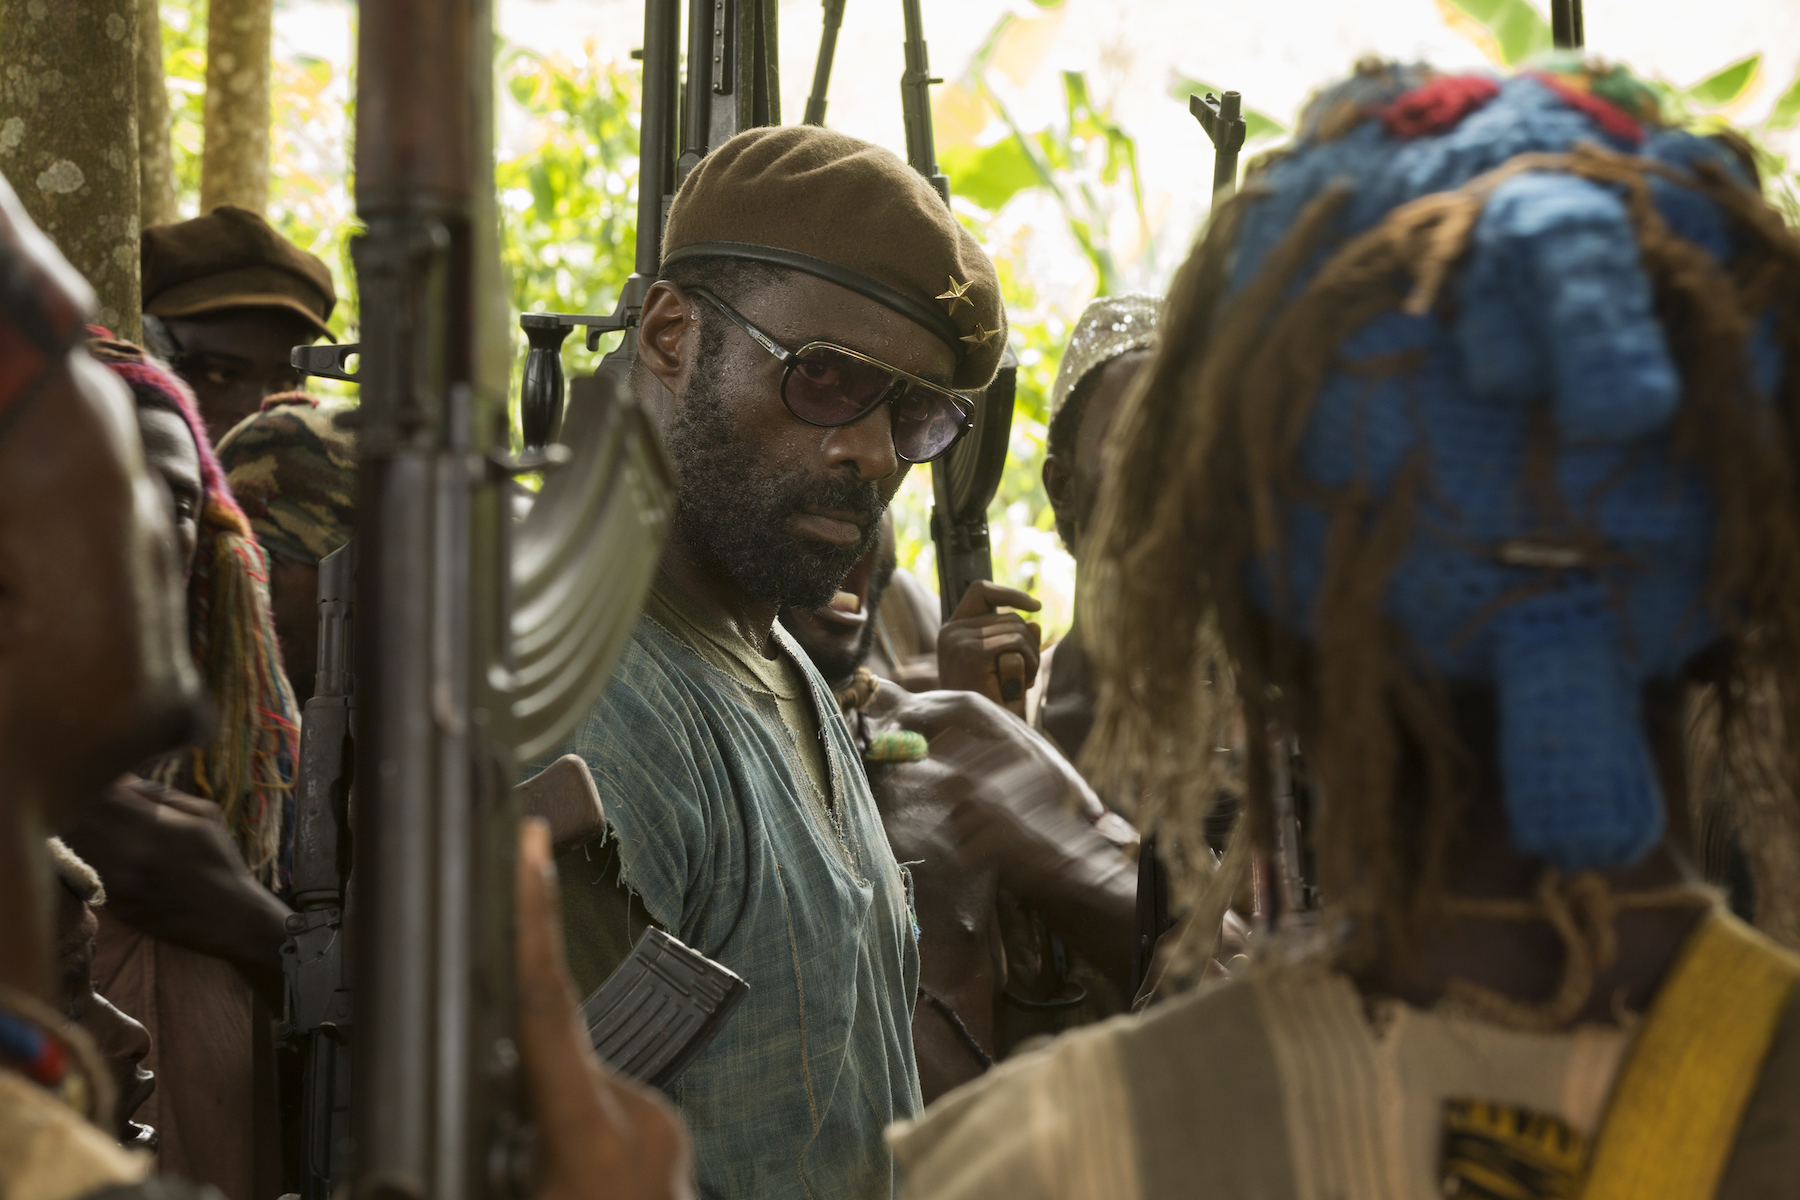 Actor Idris Elba stands as a warlord in a crowd of gun-toting soldiers in Beasts of No Nation